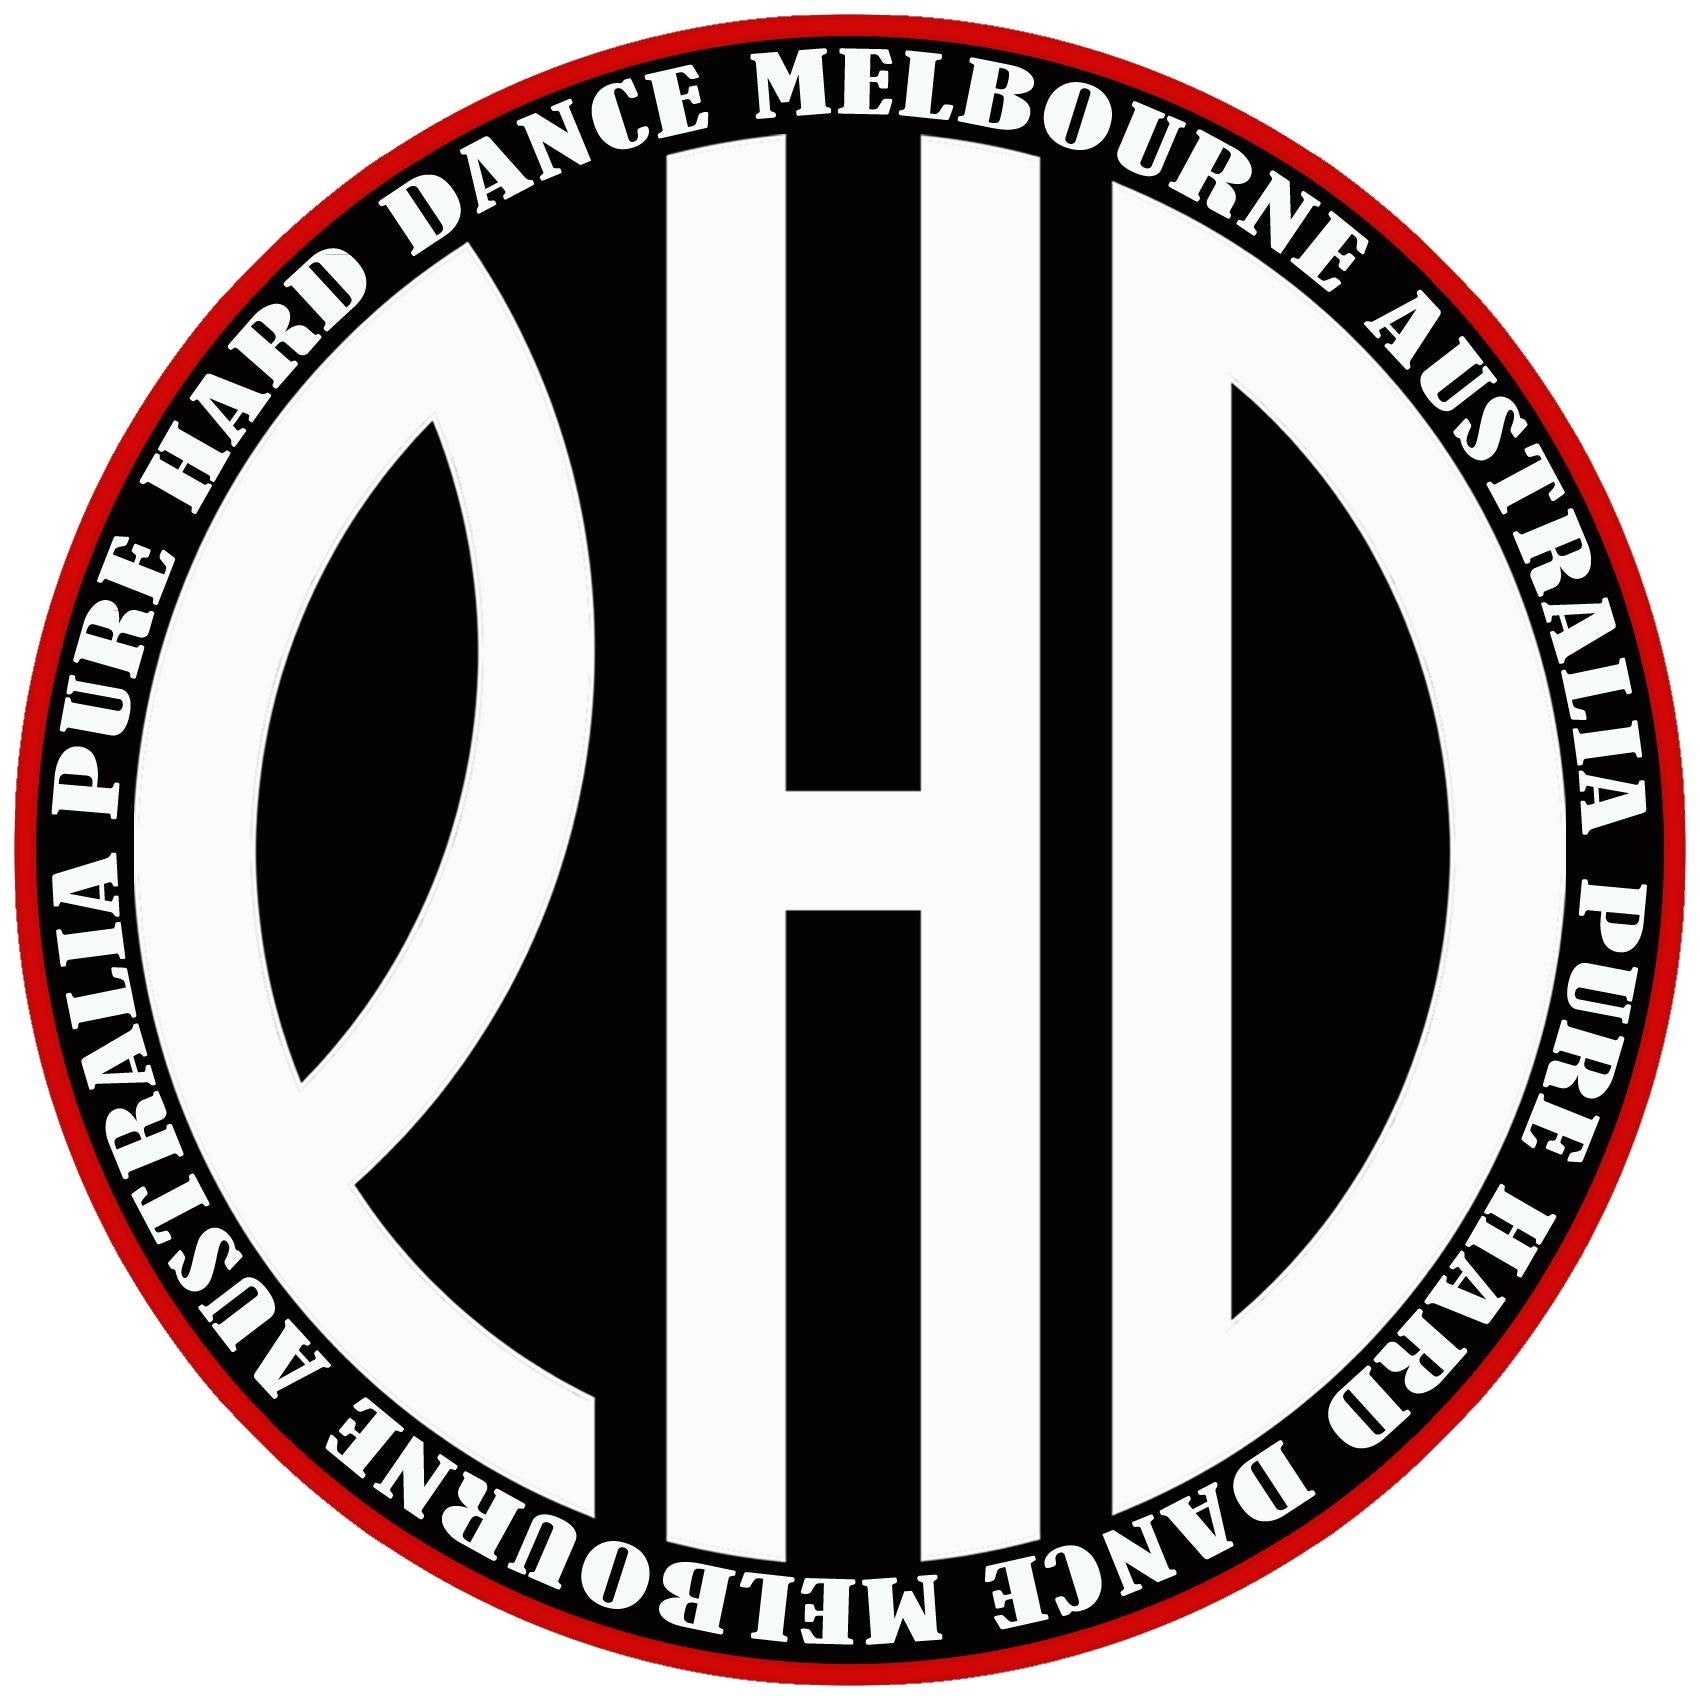 Pure Hard Dance Logo